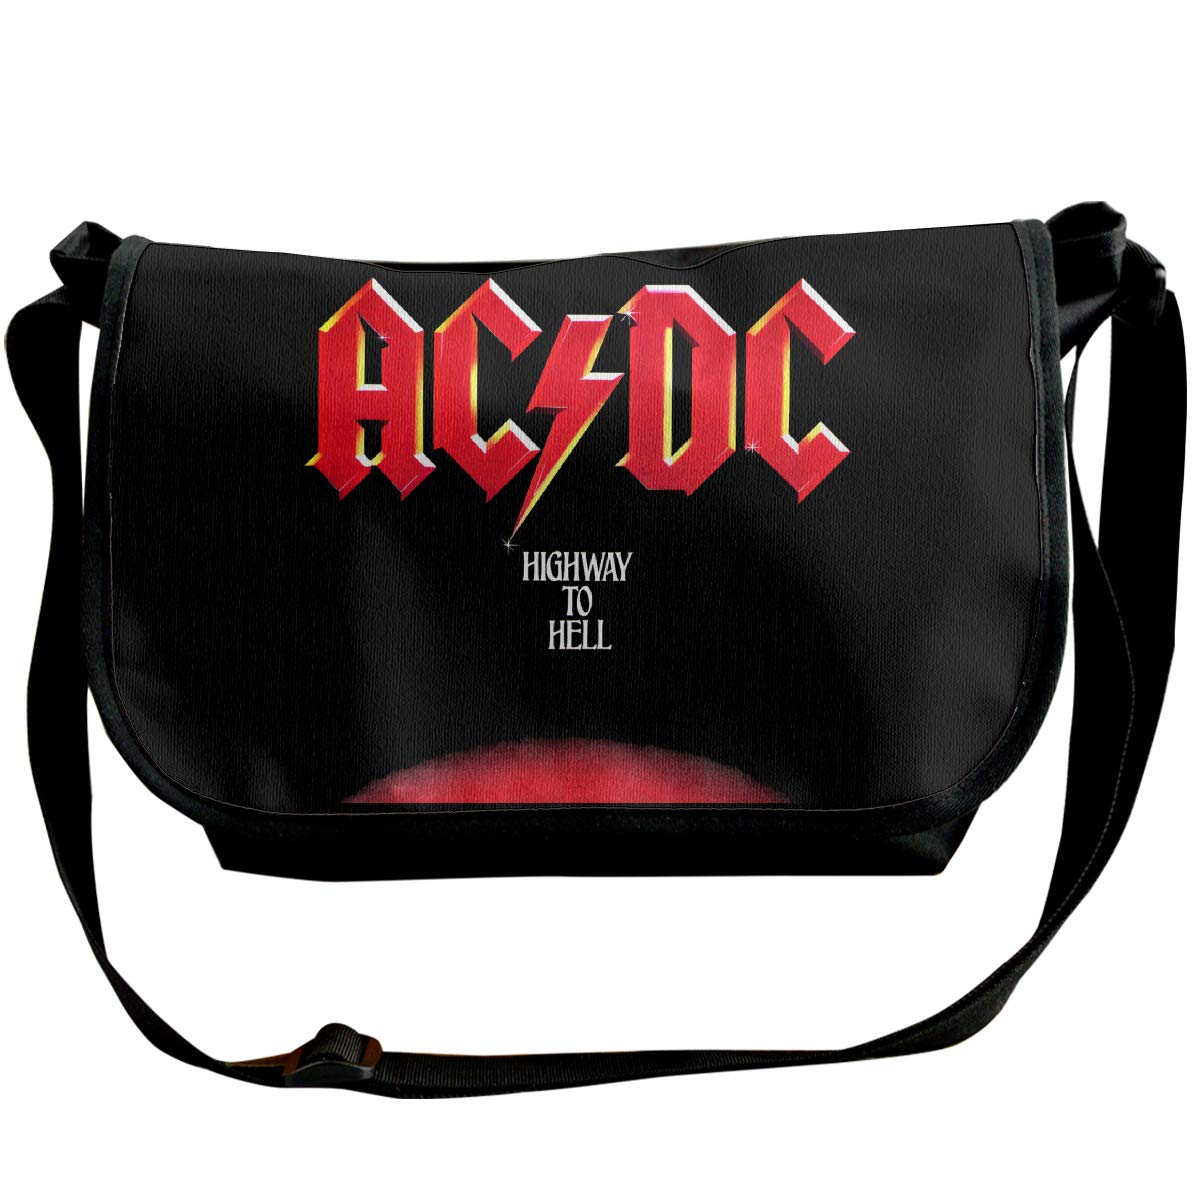 Classic Ac Dc Highway To Hell Messenger Bag Shoulder Bag For All-Purpose Use